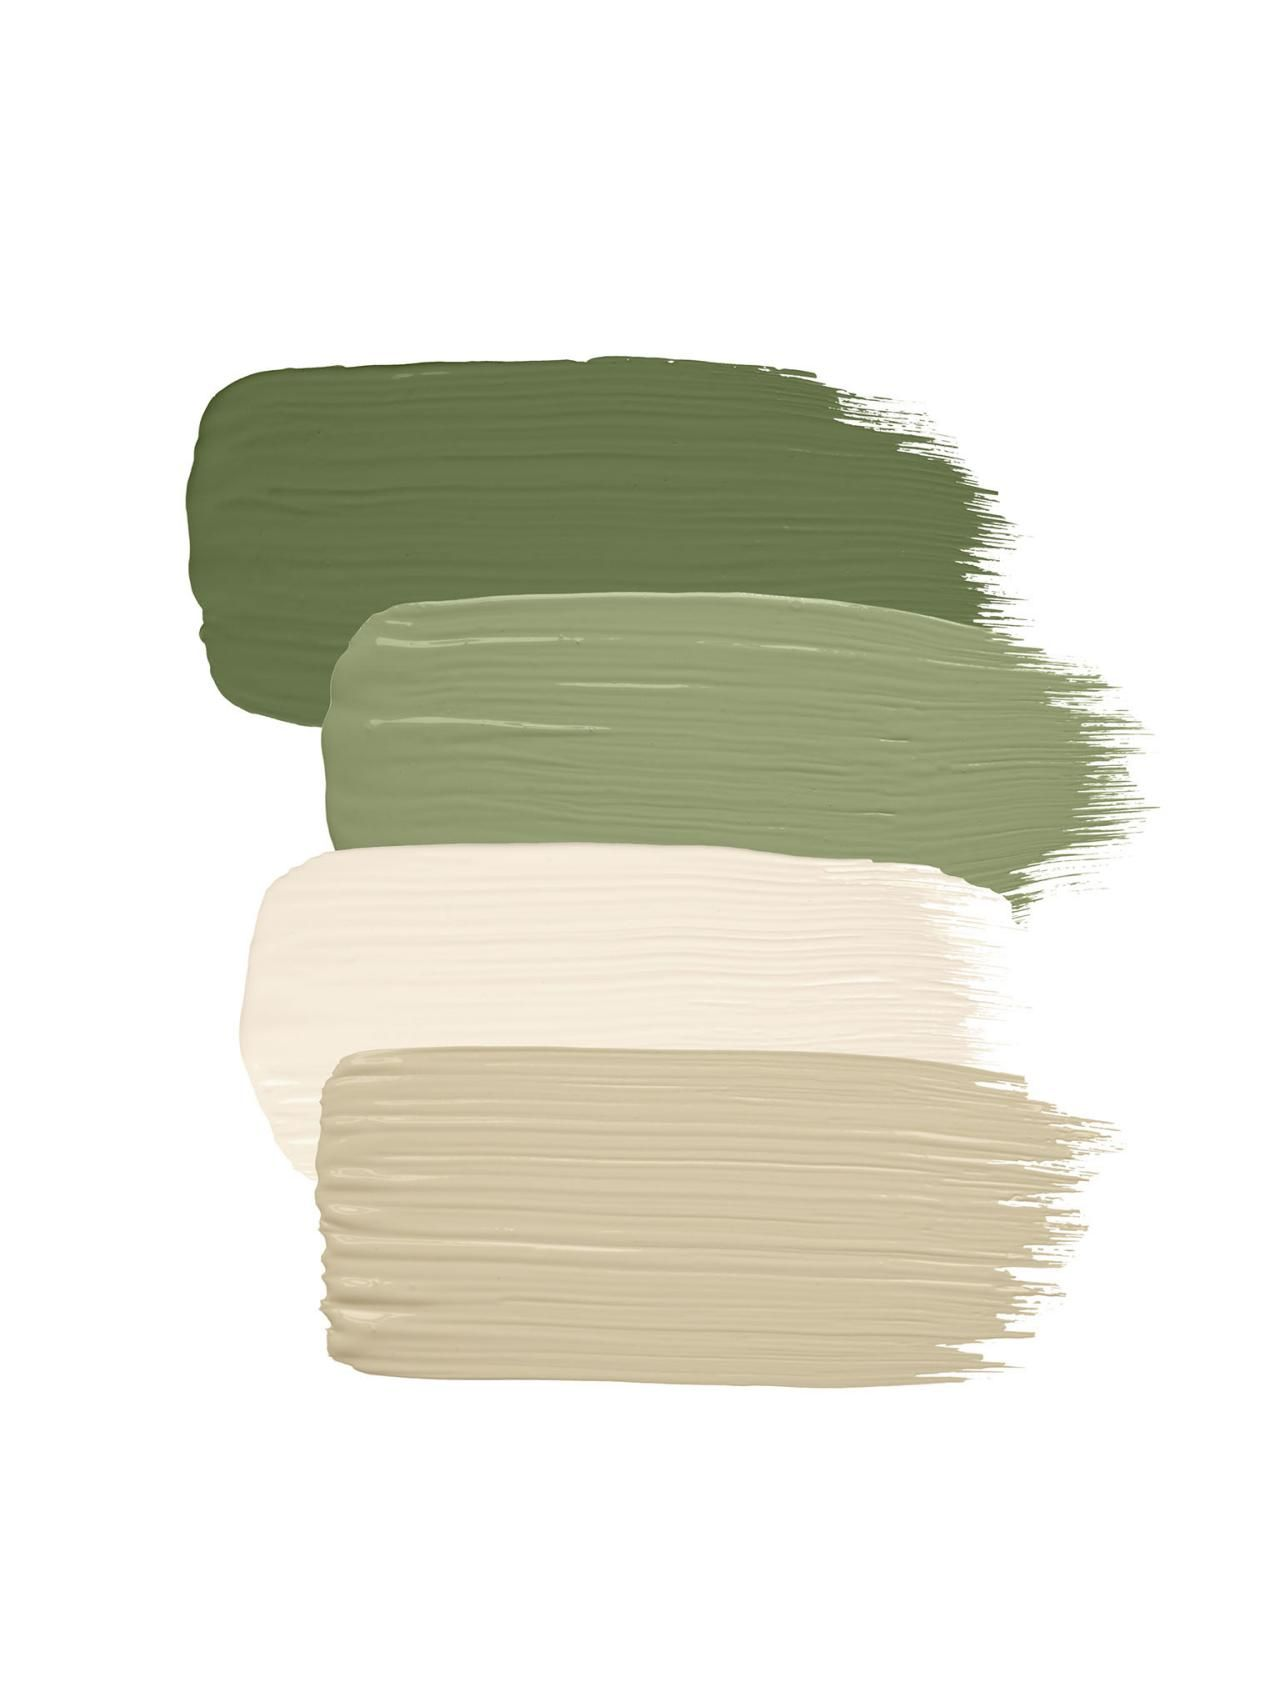 small resolution of house first story artichoke by sherwin williams house second story clary sage by sherwin williams trim dover white by sherwin williams